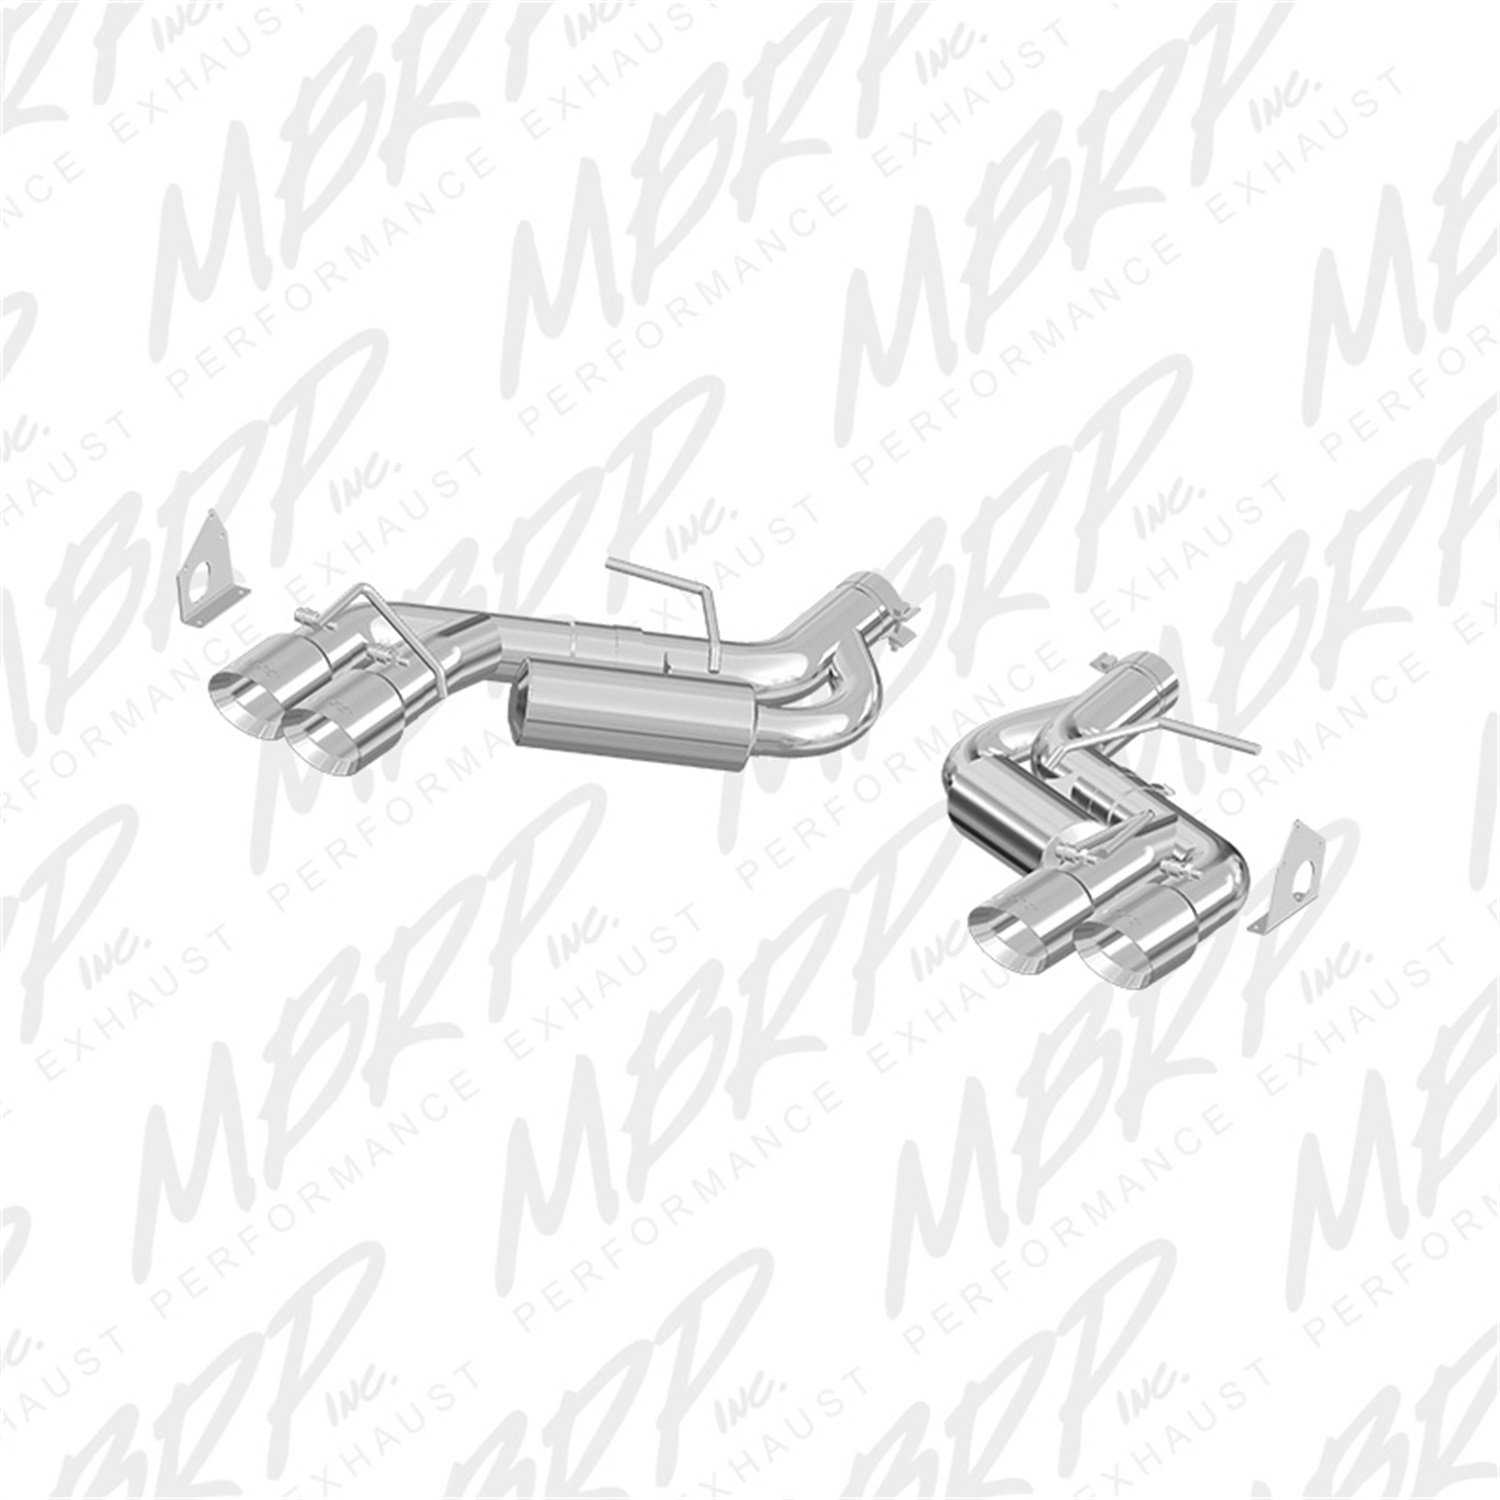 MBRP S7036AL 3 in. Dual Axle Back Quad Tips Aluminized Exhaust System   B01GCYCSYS